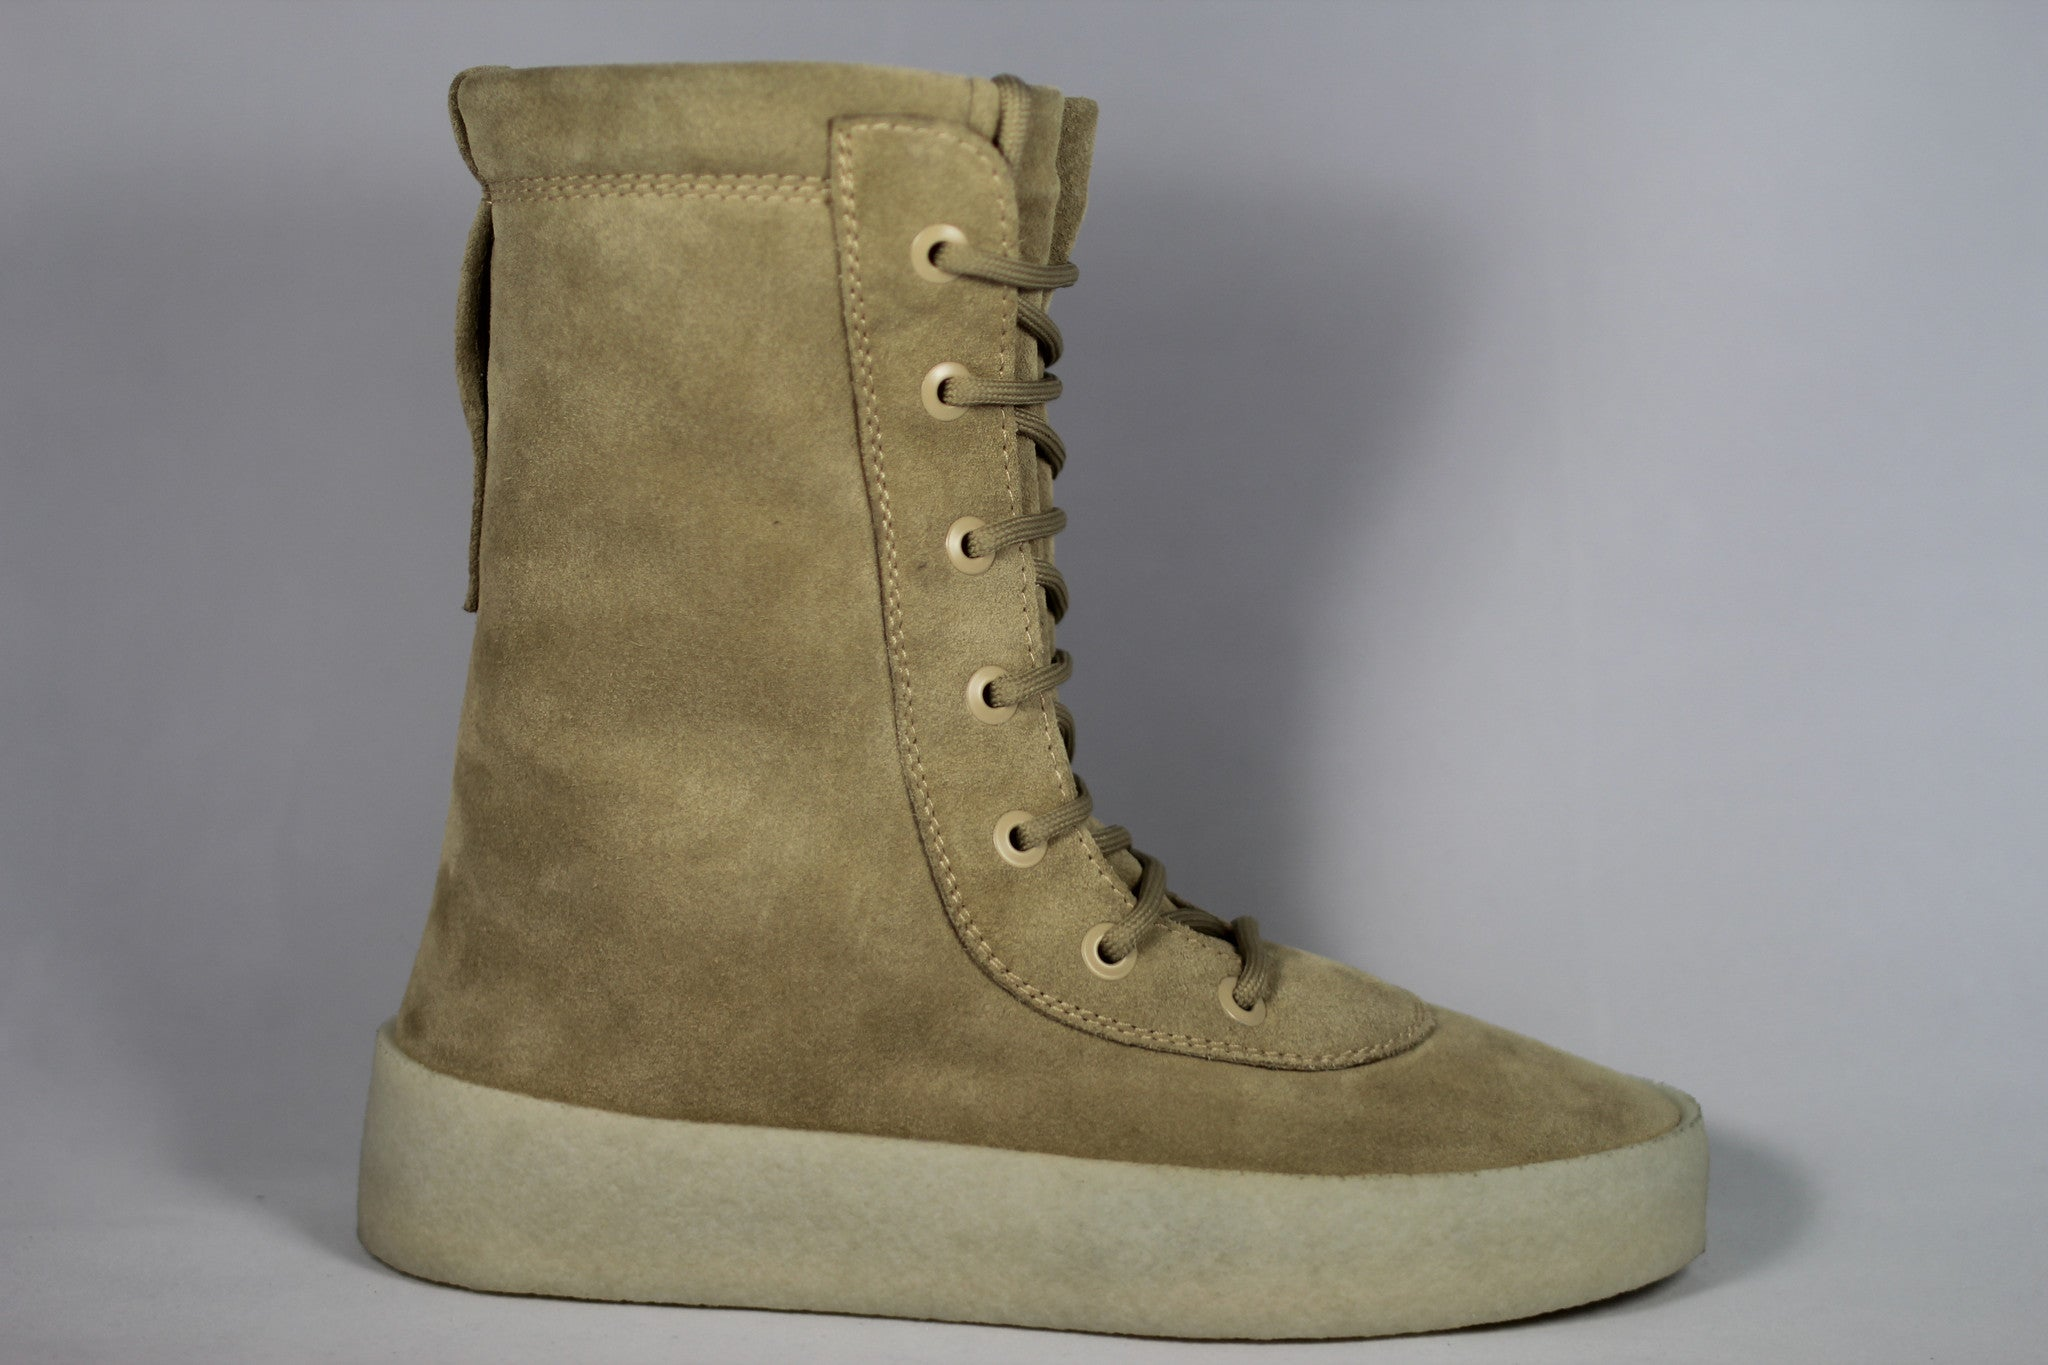 ef8a6ec9c91 Shop Adidas Yeezy Shoes by Kanye West in Detroit